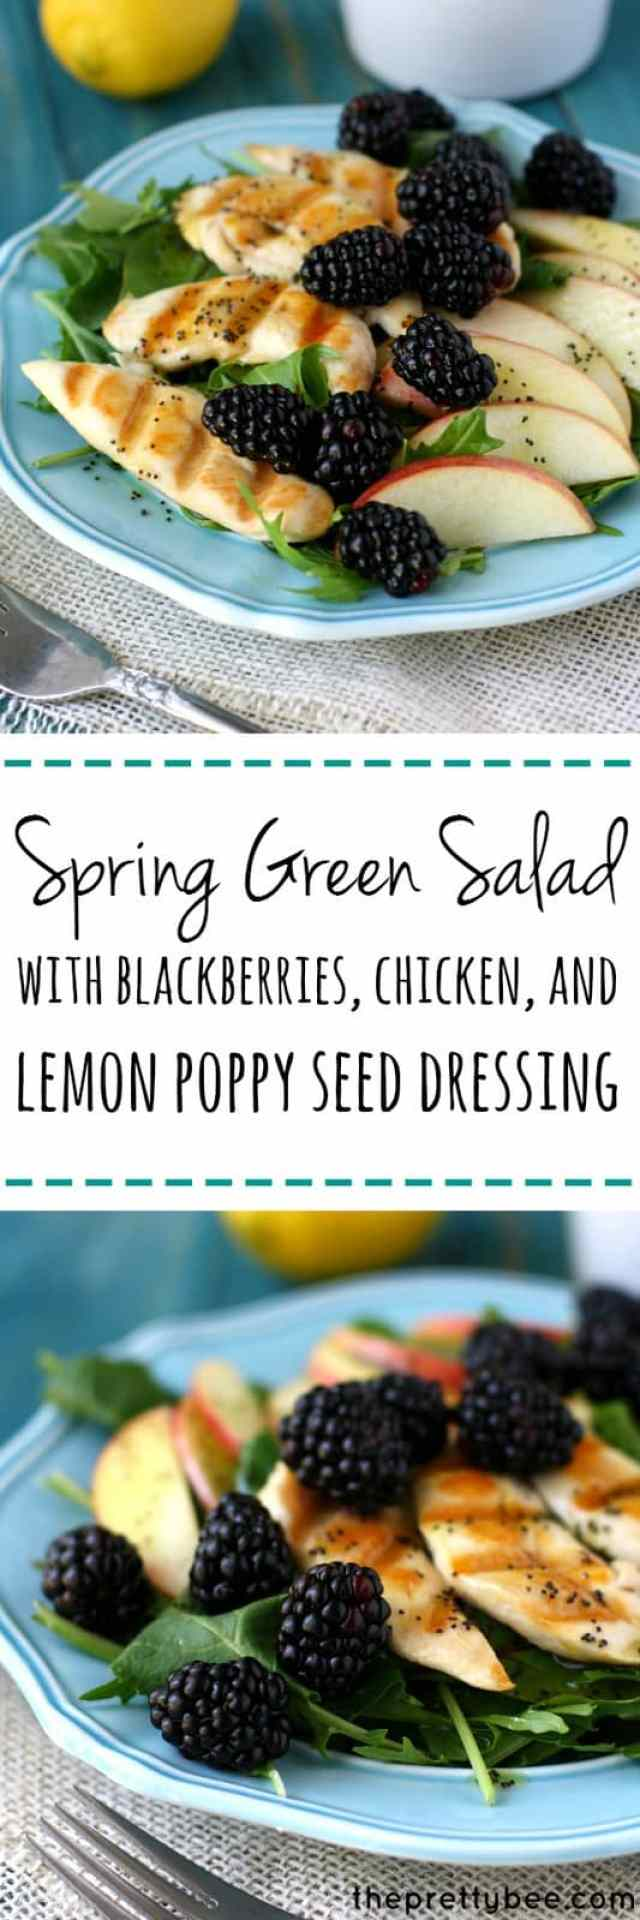 A fresh green salad topped with juicy blackberries, crisp apples, and tender chicken. This salad is finished with a lemon poppy seed dressing that just says spring! @Driscoll's Berries #finestberries AD